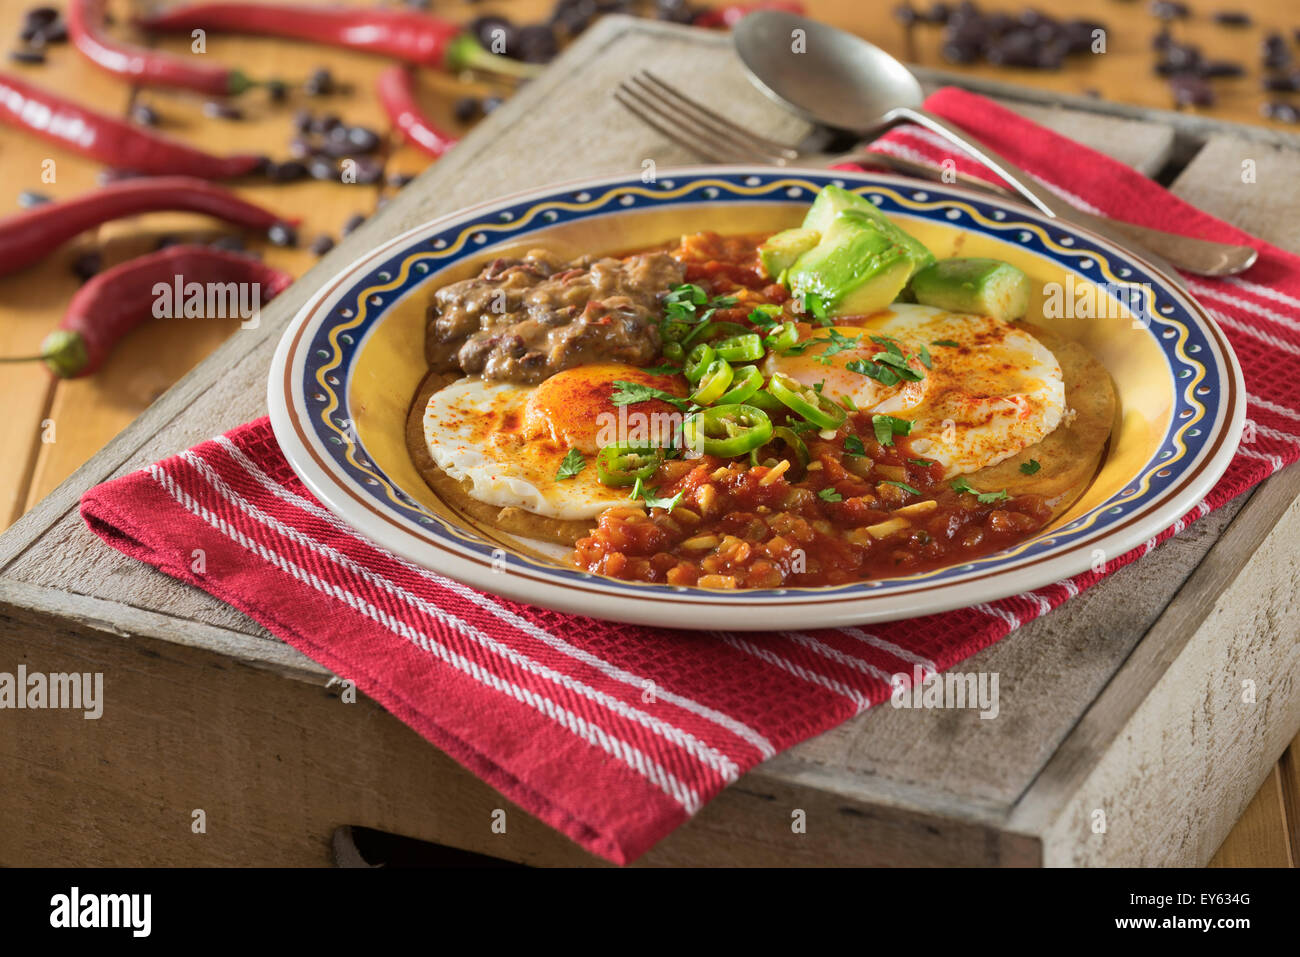 Huevos rancheros. Fried eggs on tortillas with tomato chilli sauce and refried beans - Stock Image